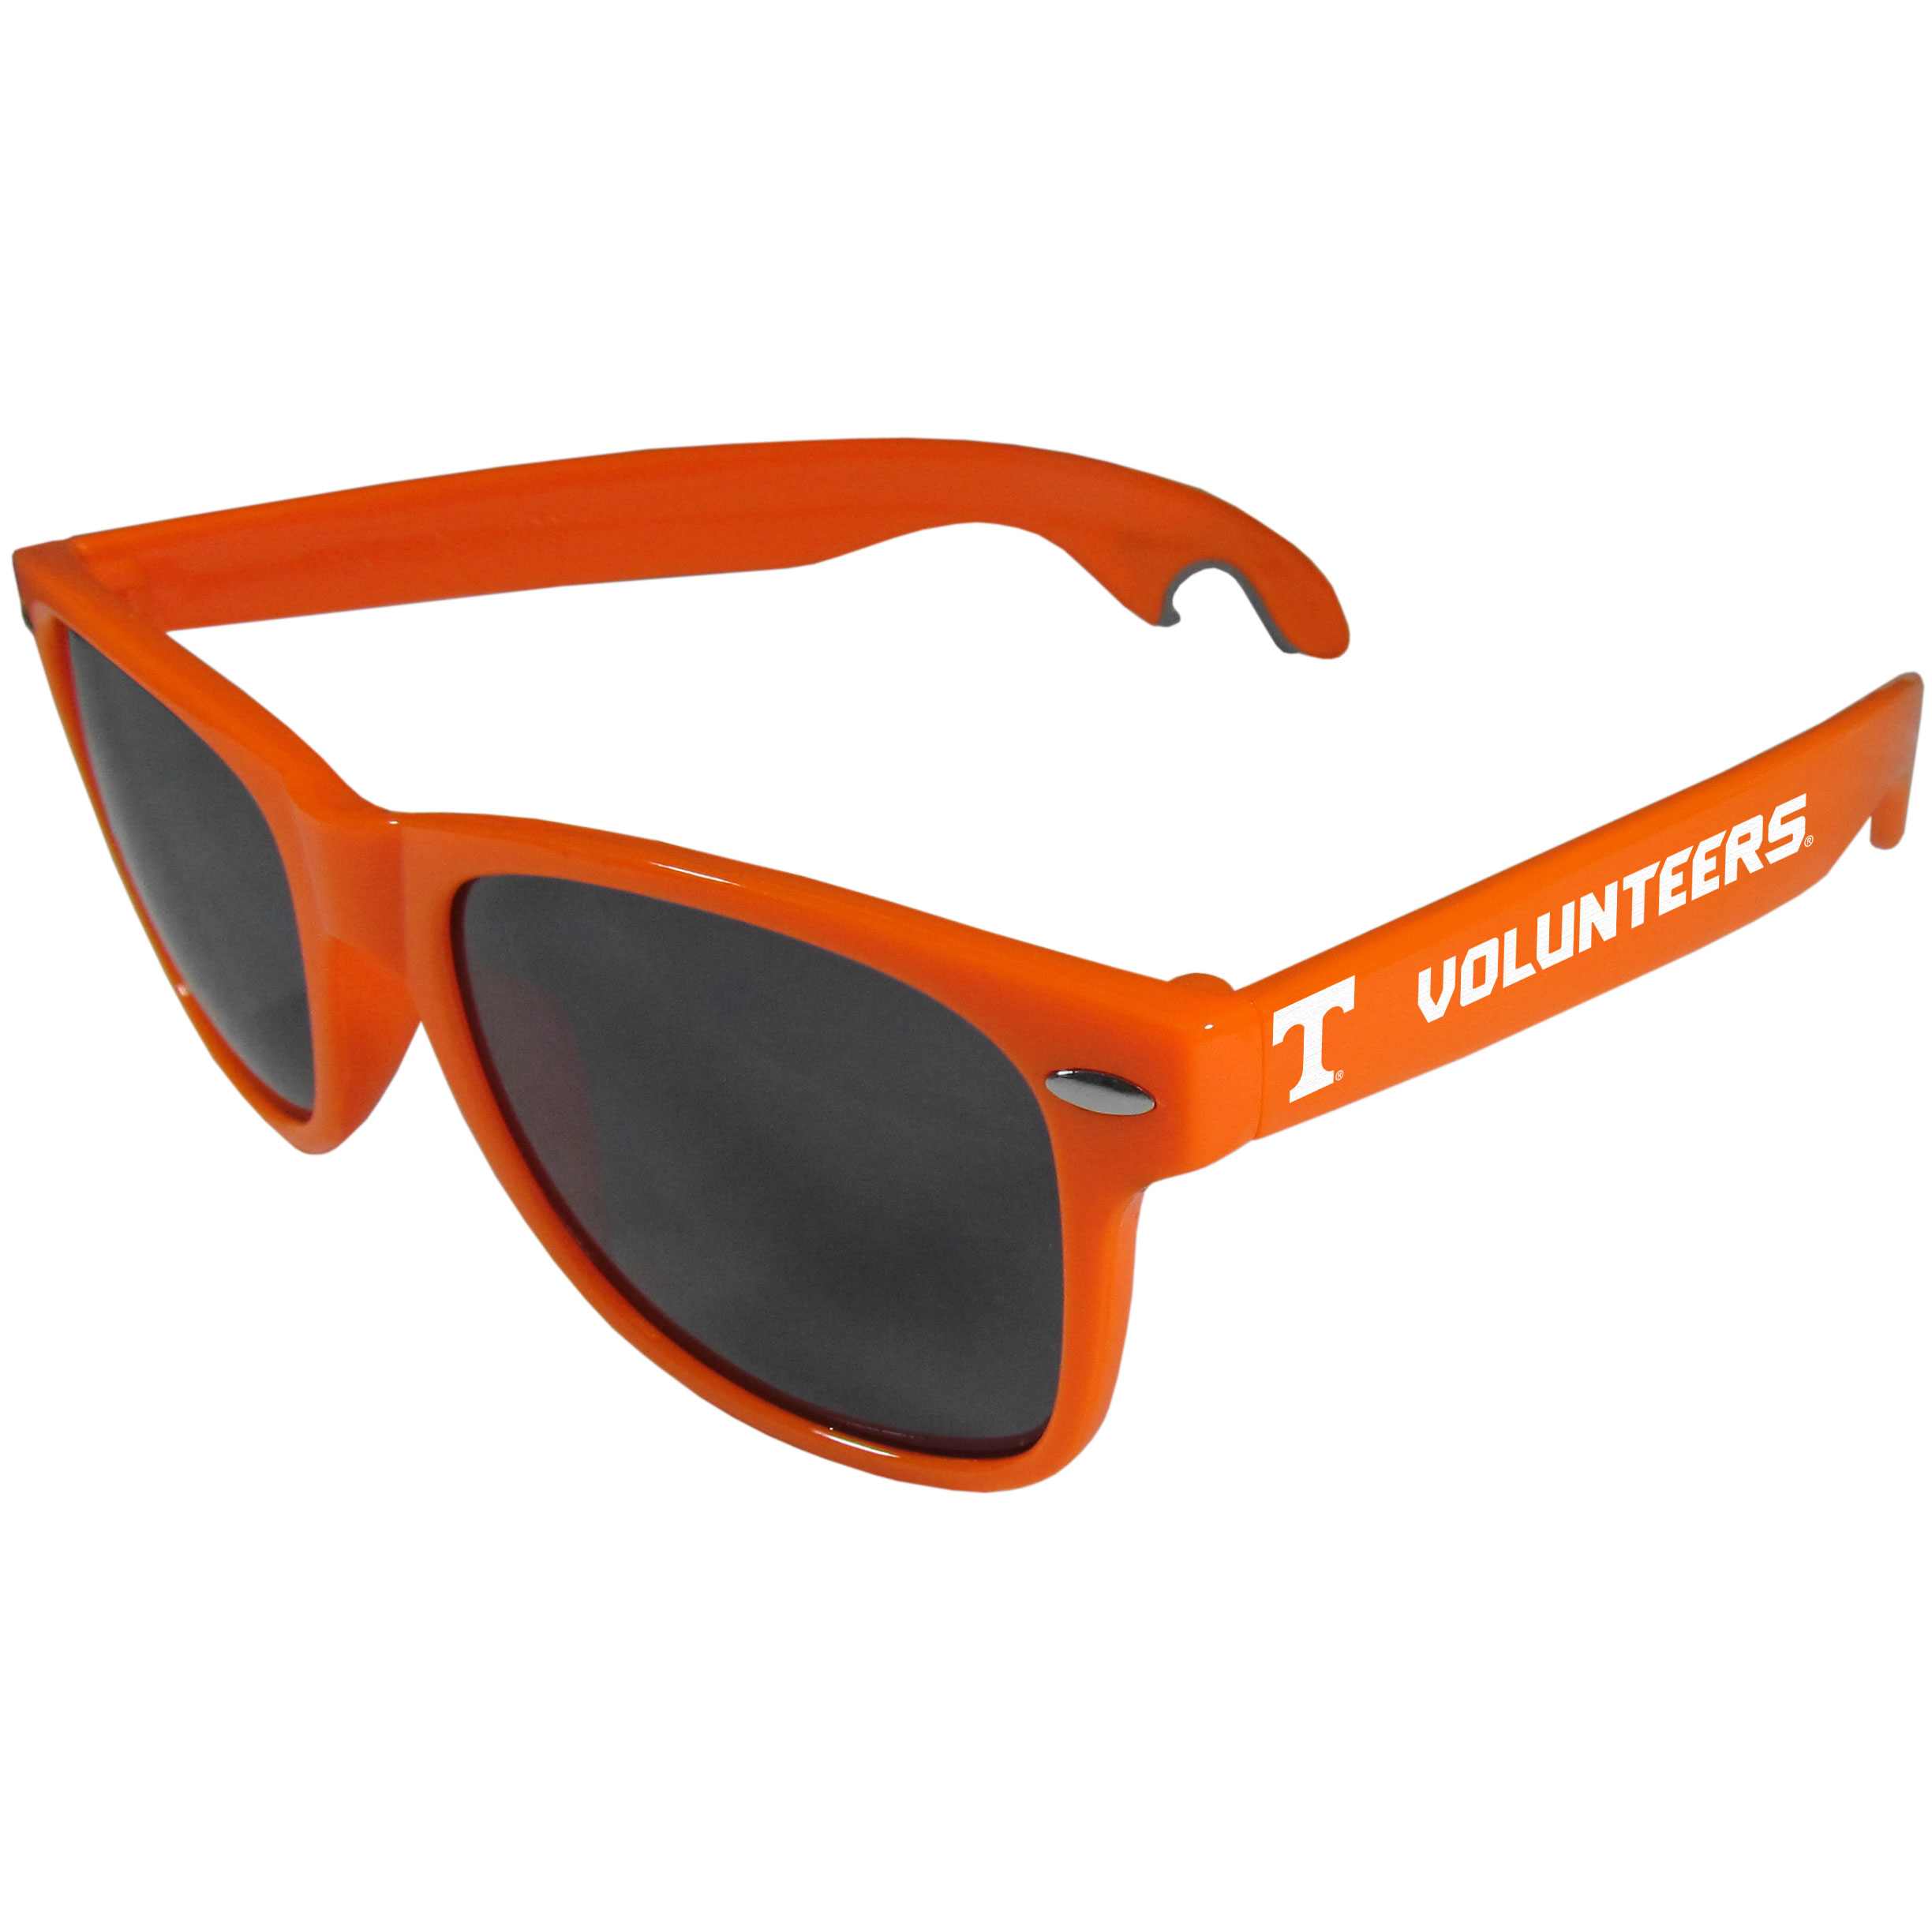 Tennessee Volunteers Beachfarer Bottle Opener Sunglasses, Orange - Seriously, these sunglasses open bottles! Keep the party going with these amazing Tennessee Volunteers bottle opener sunglasses. The stylish retro frames feature team designs on the arms and functional bottle openers on the end of the arms. Whether you are at the beach or having a backyard BBQ on game day, these shades will keep your eyes protected with 100% UVA/UVB protection and keep you hydrated with the handy bottle opener arms.